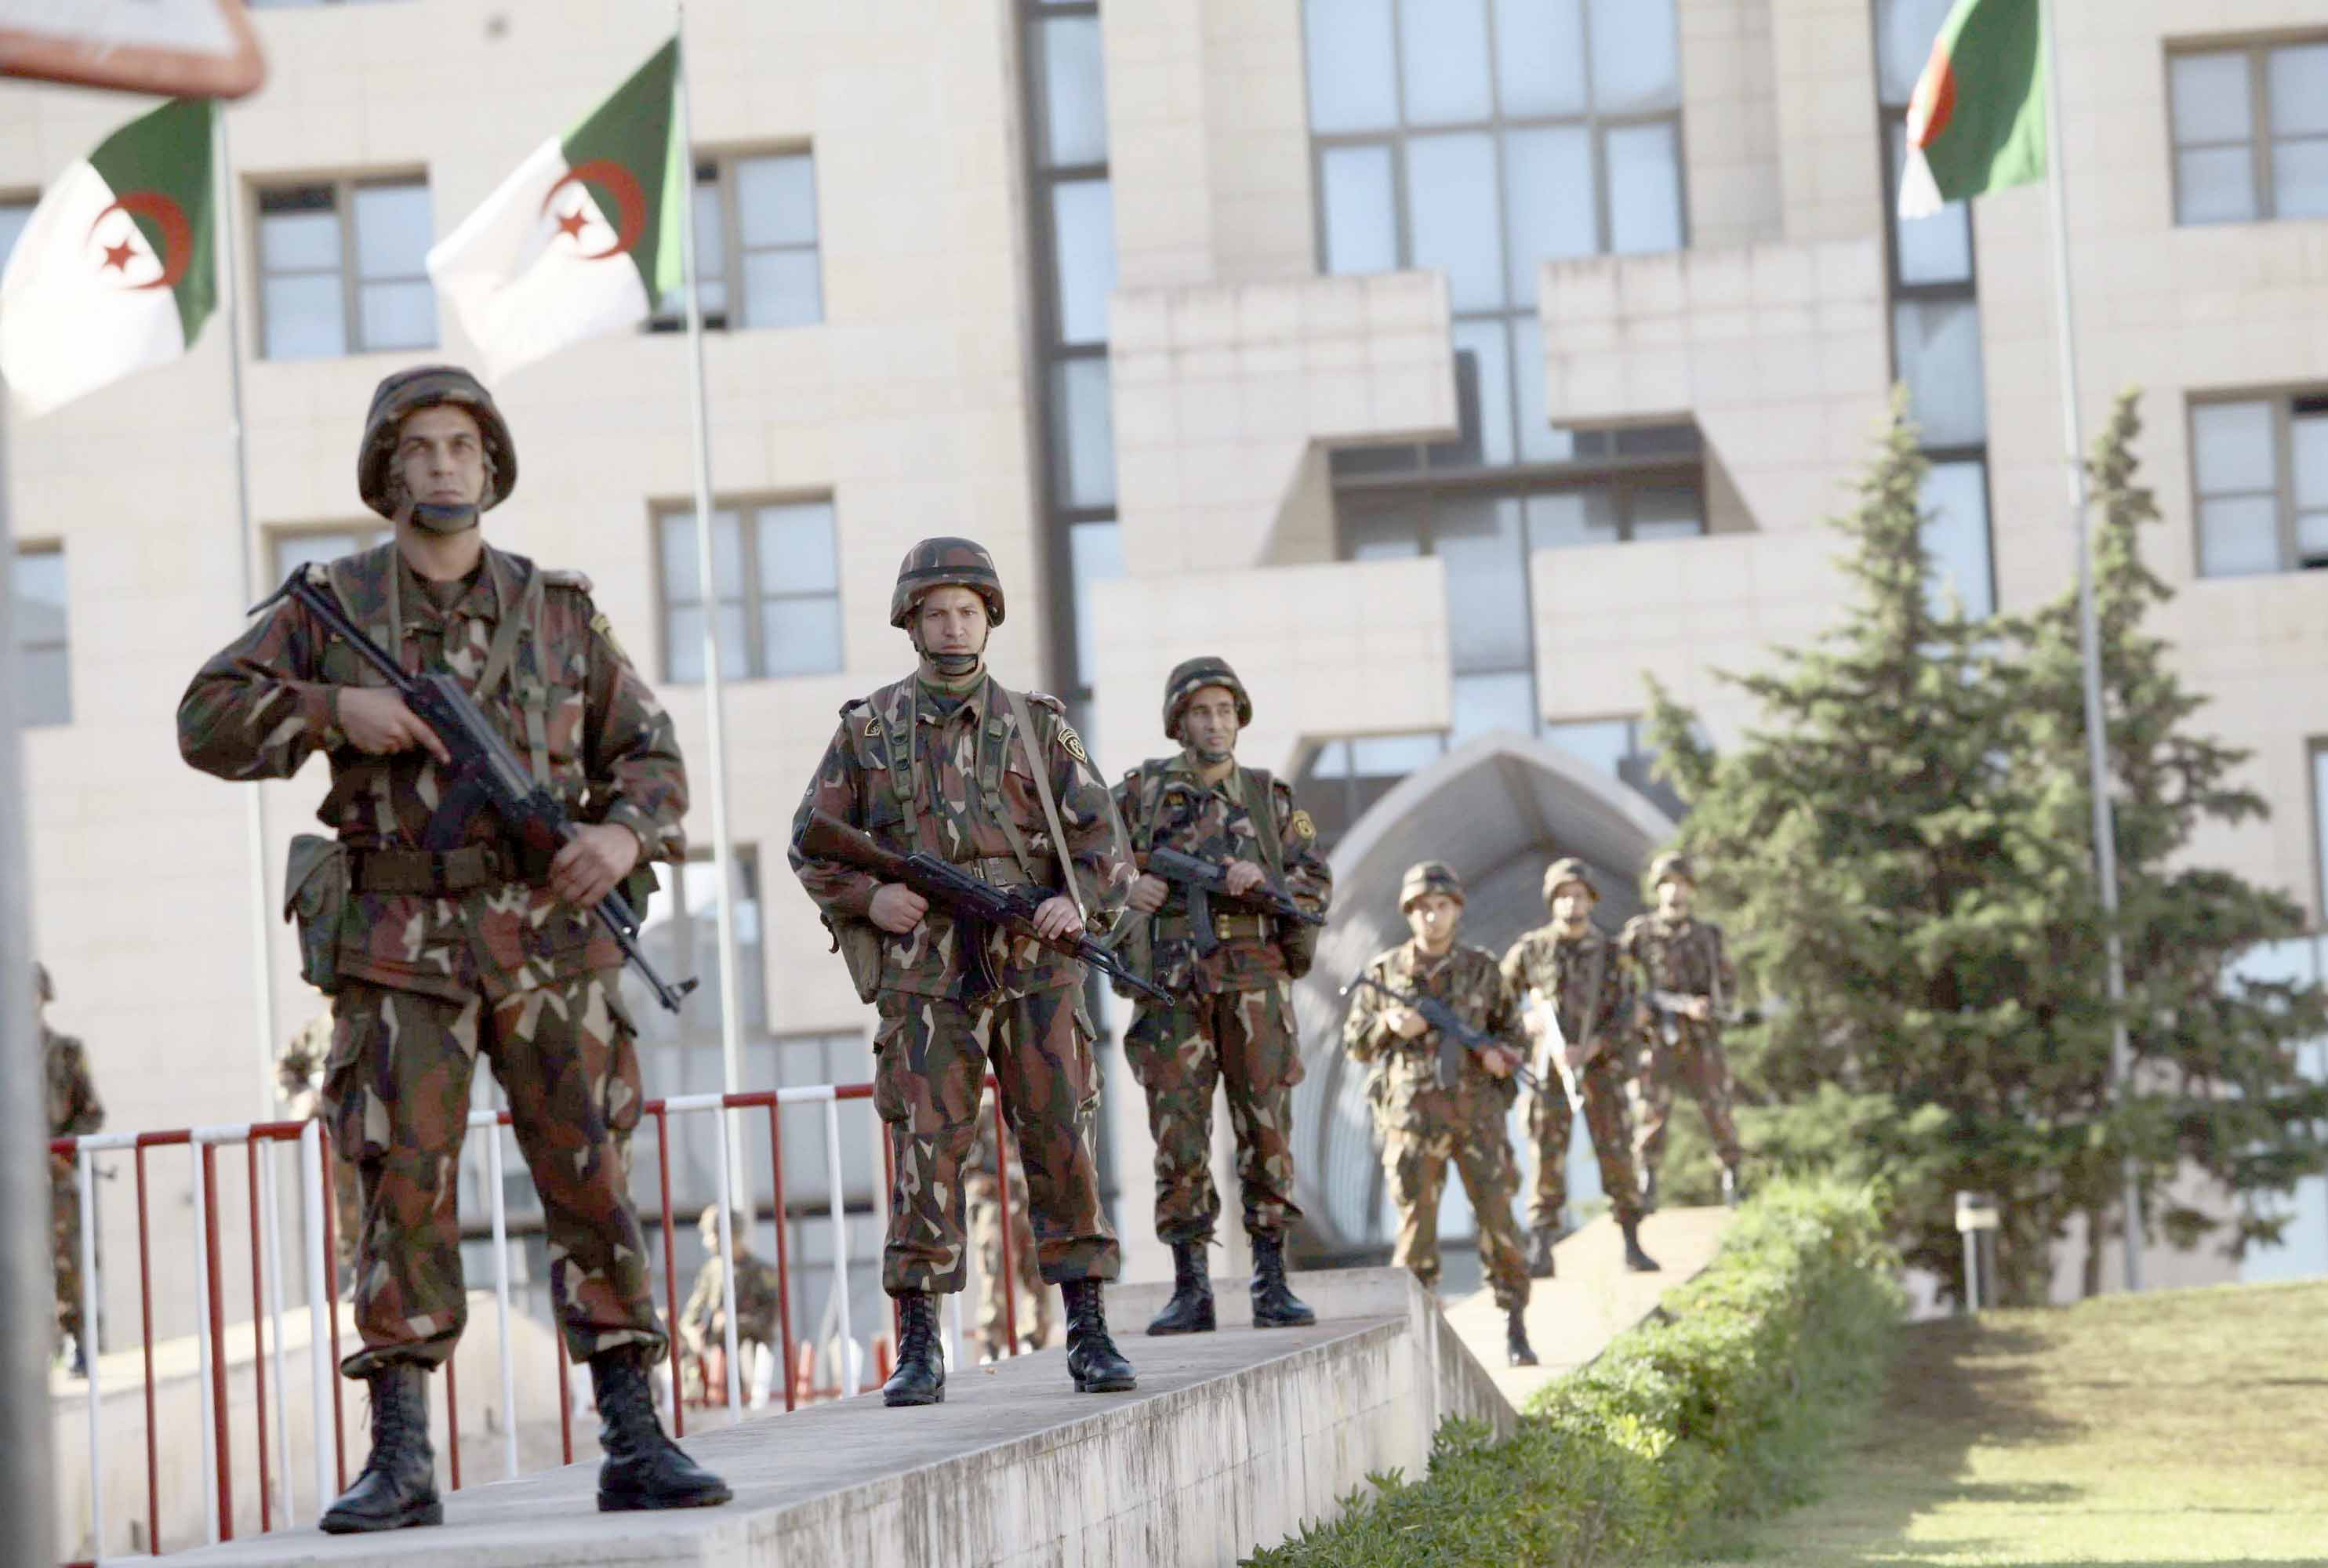 Algerian republican forces stand guard in front of the Presidential Palace in Algiers. (Reuters)